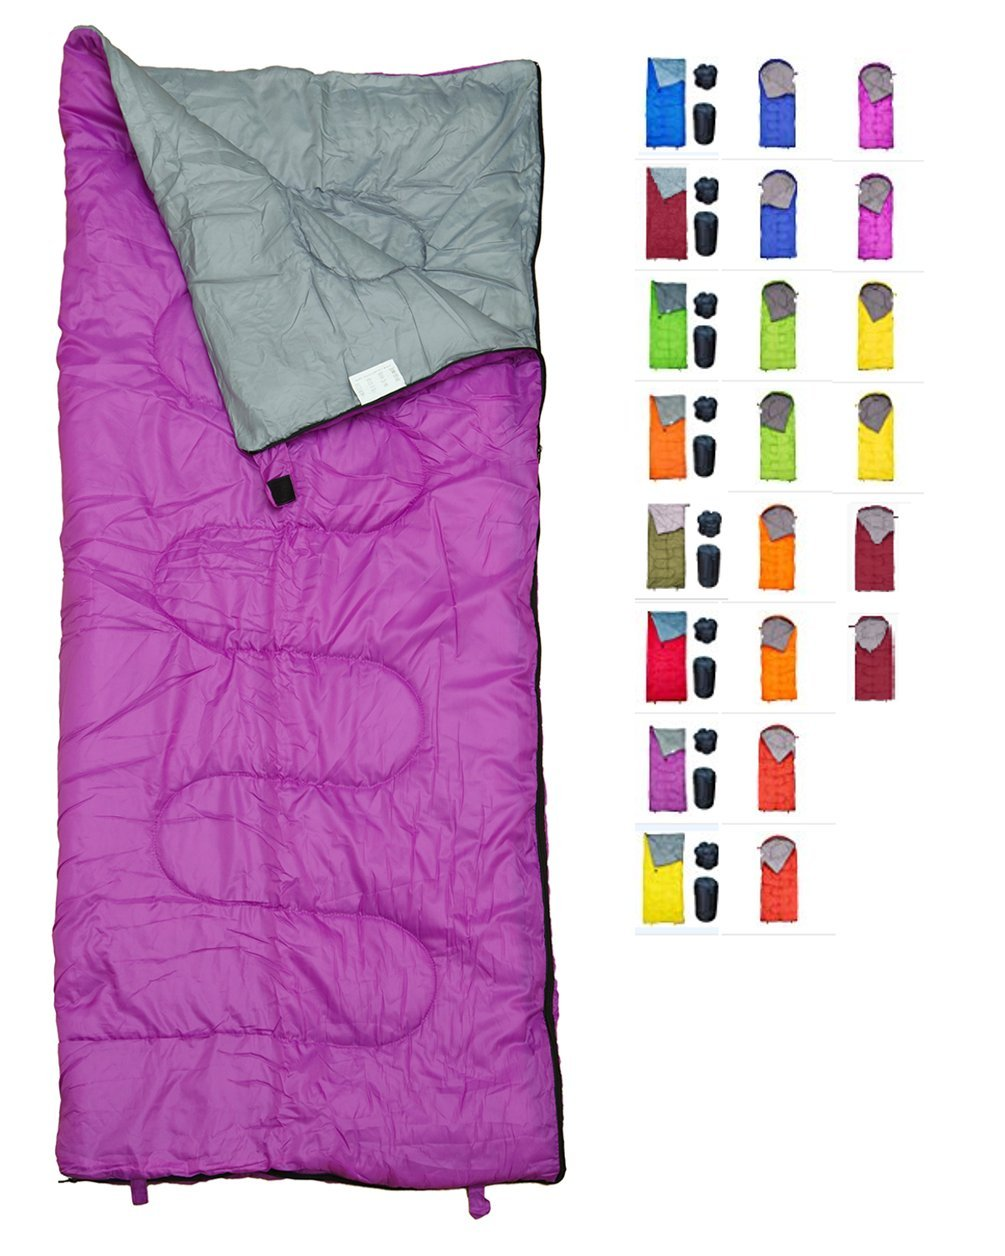 REVALCAMP Lightweight Violet/Purple Sleeping Bag Indoor & Outdoor use. Great for Kids, Youth & Adults. Ultralight and Compact Bags are Perfect for Hiking, Backpacking, Camping & Travel. by REVALCAMP